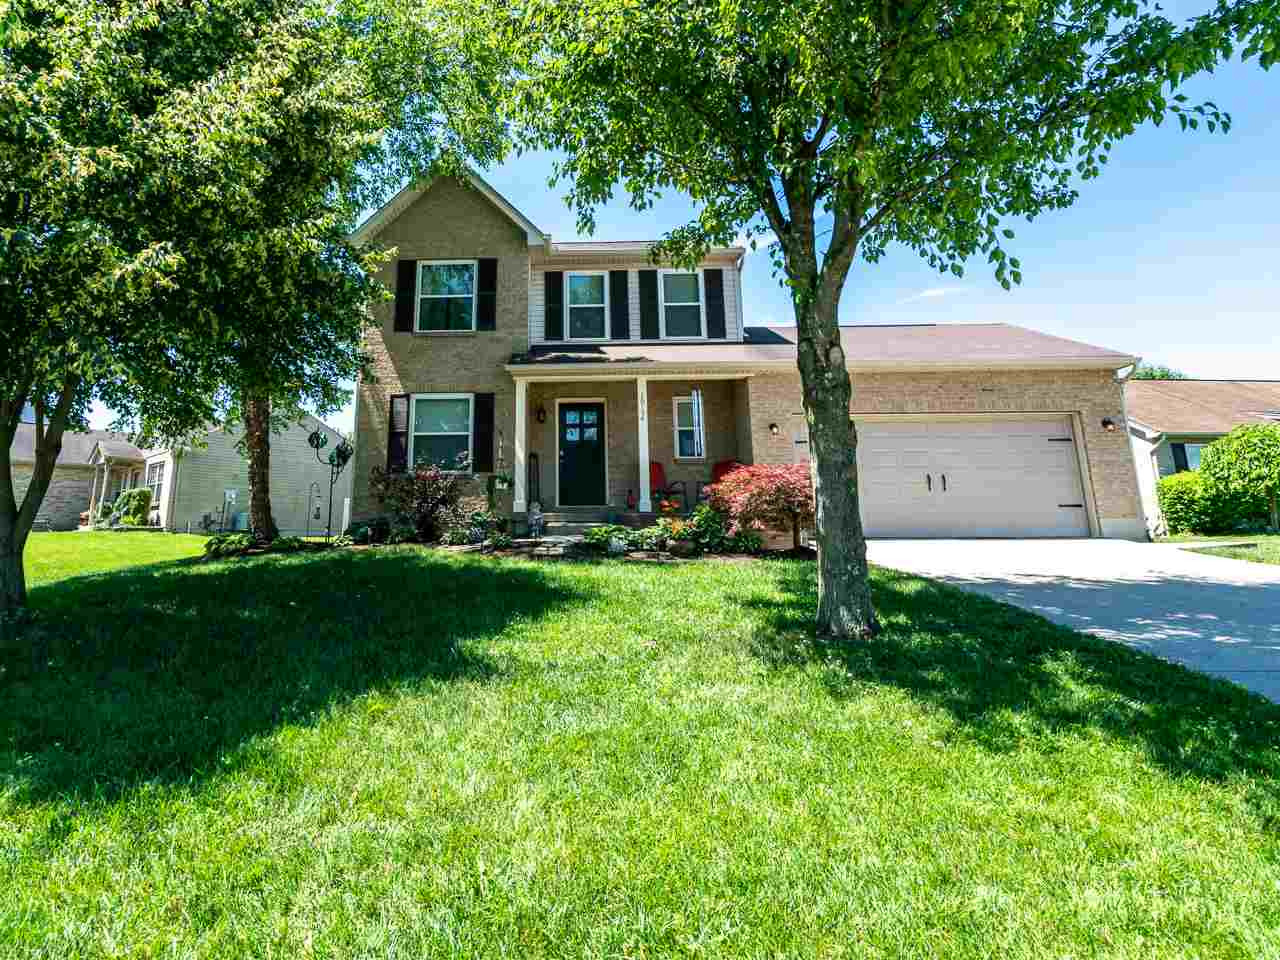 Photo 2 for 10154 Hiddenknoll Dr Independence, KY 41051